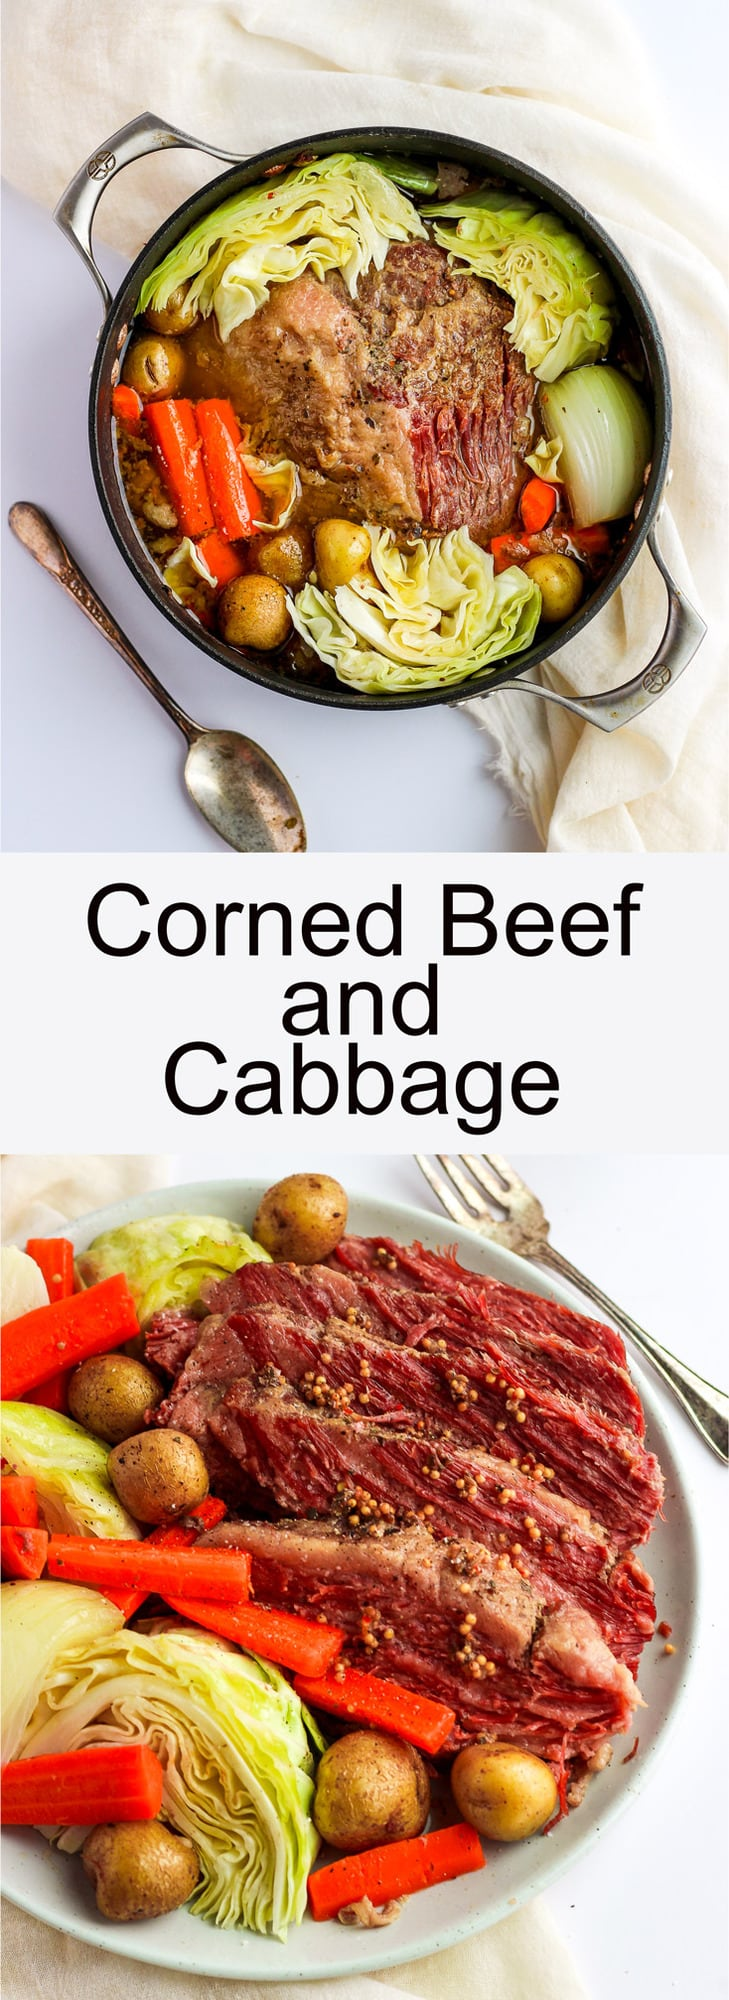 Corned Beef and Cabbage - the classic St. Patrick's Day Meal!